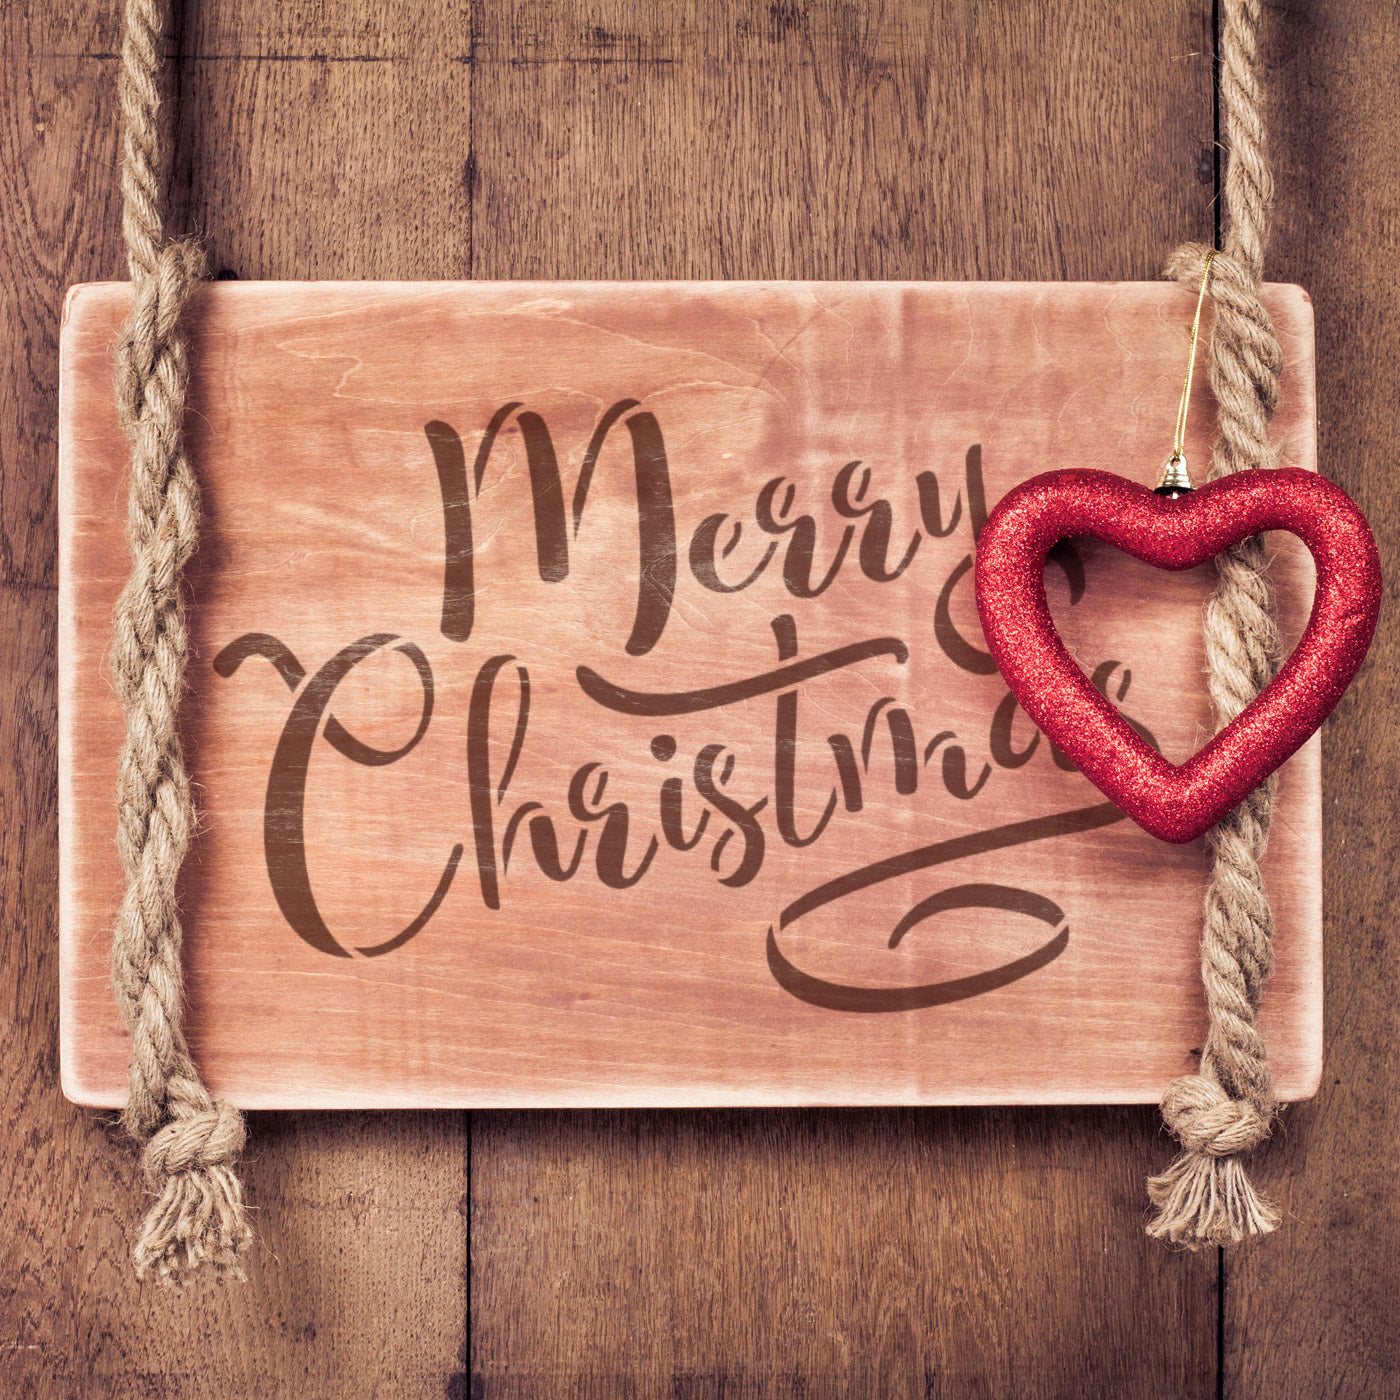 Christmas Stencils For Wood.Merry Christmas Stencil Script Style Christmas Craft Template